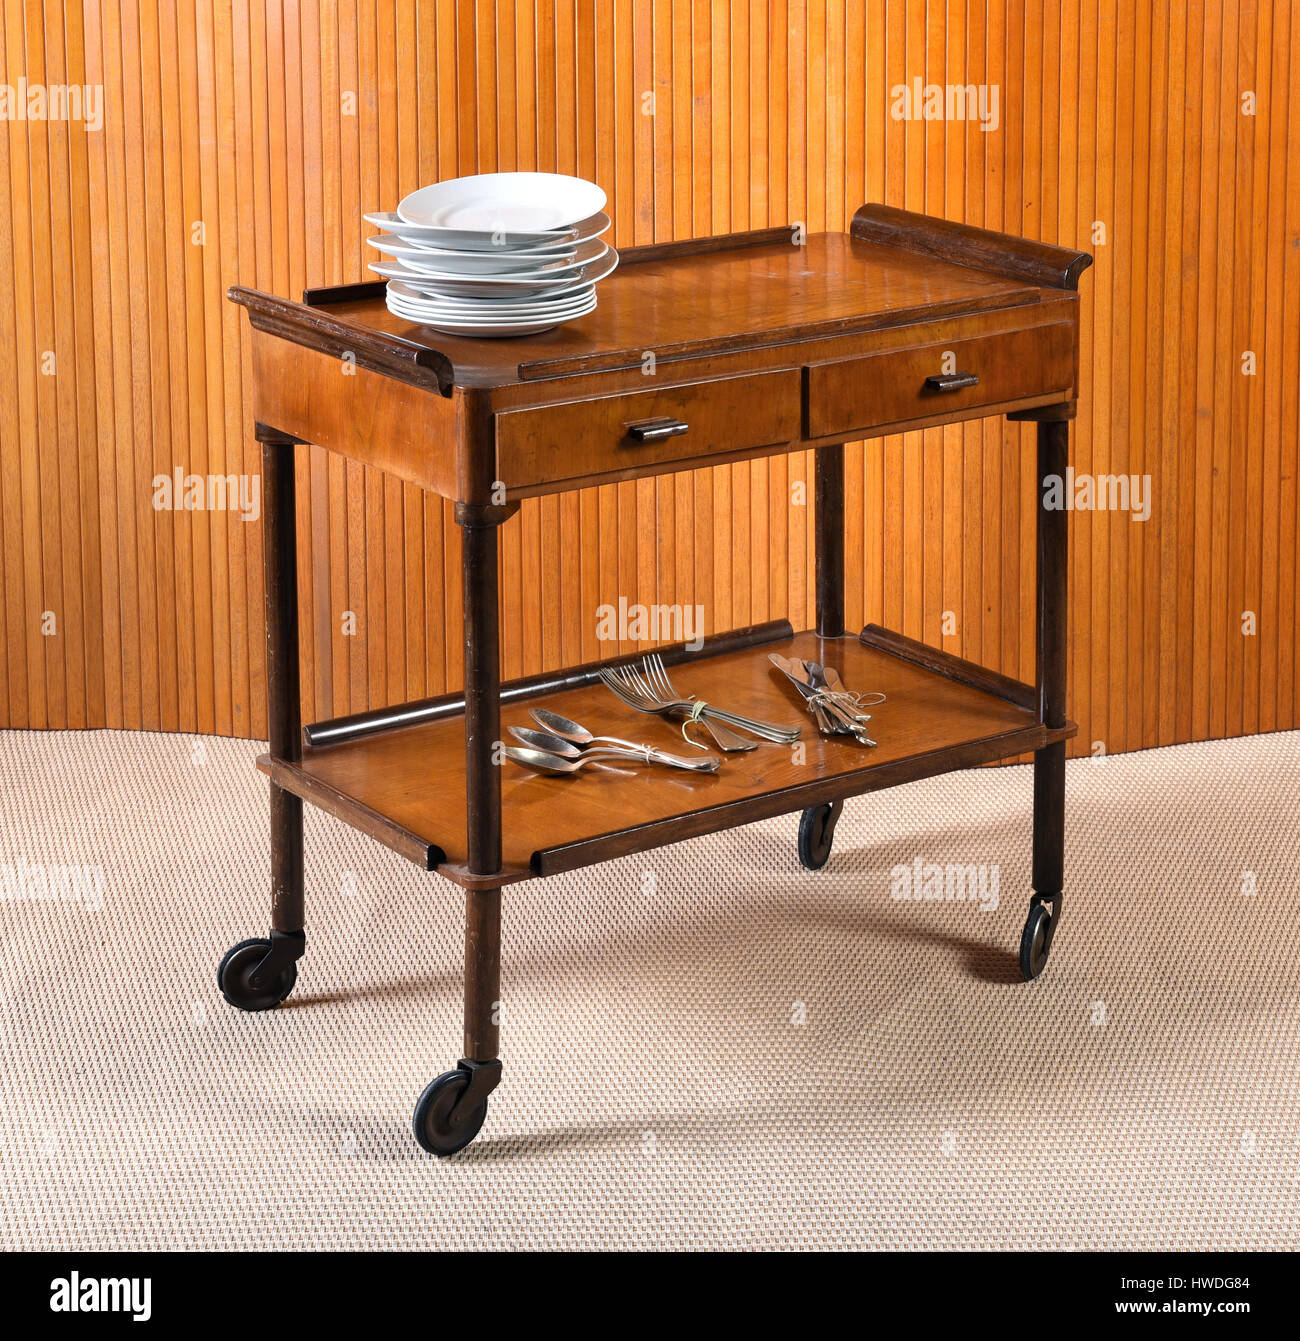 Best Vintage wooden server table or trolley with two drawers on wheels  NW39